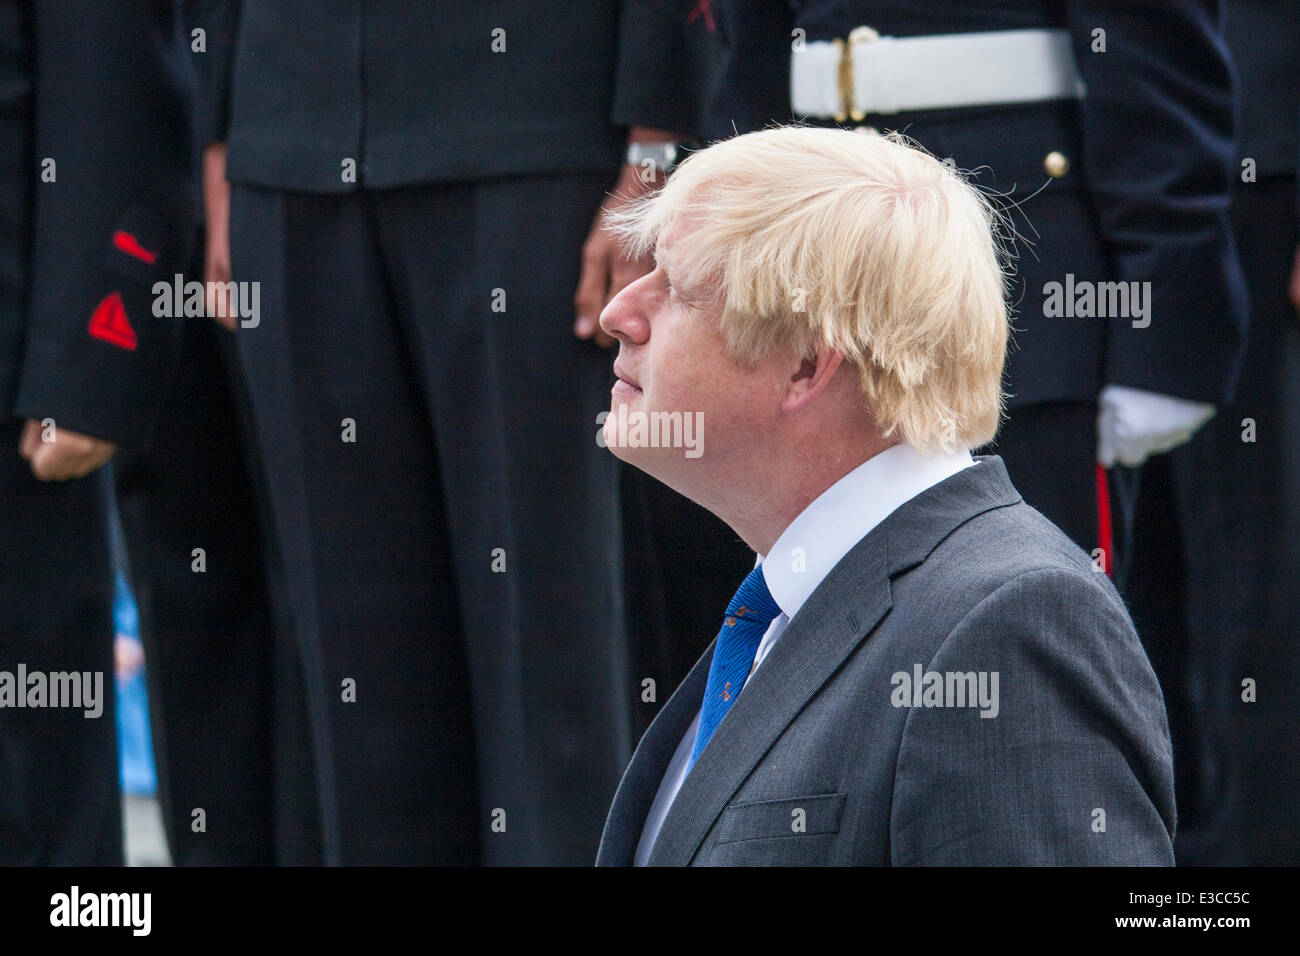 London, UK. 23rd June, 2014. Mayor Boris Lohnson watches the flag being raised at City Hall as members and veterans - Stock Image